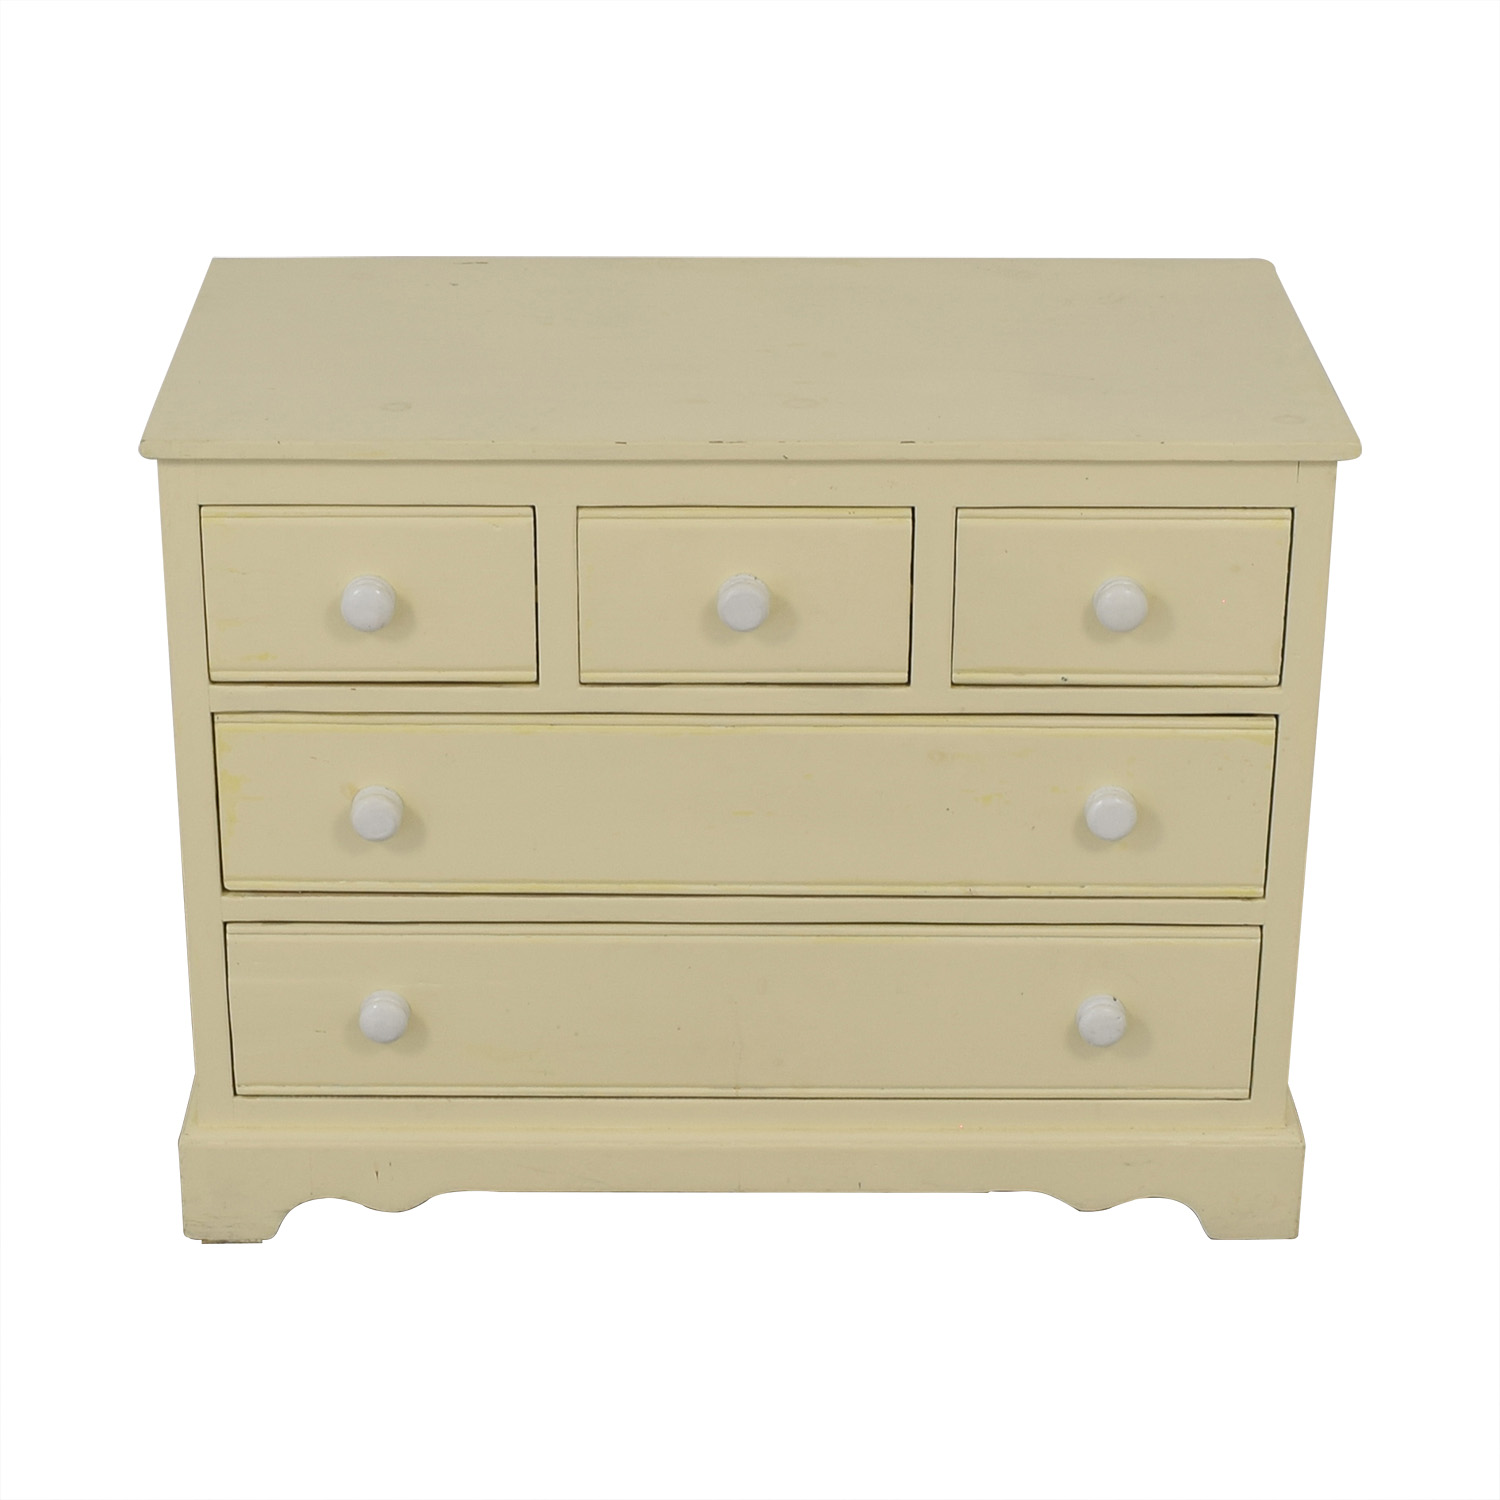 Pottery Barn Pottery Barn Five Drawer Dresser with Extendable Table